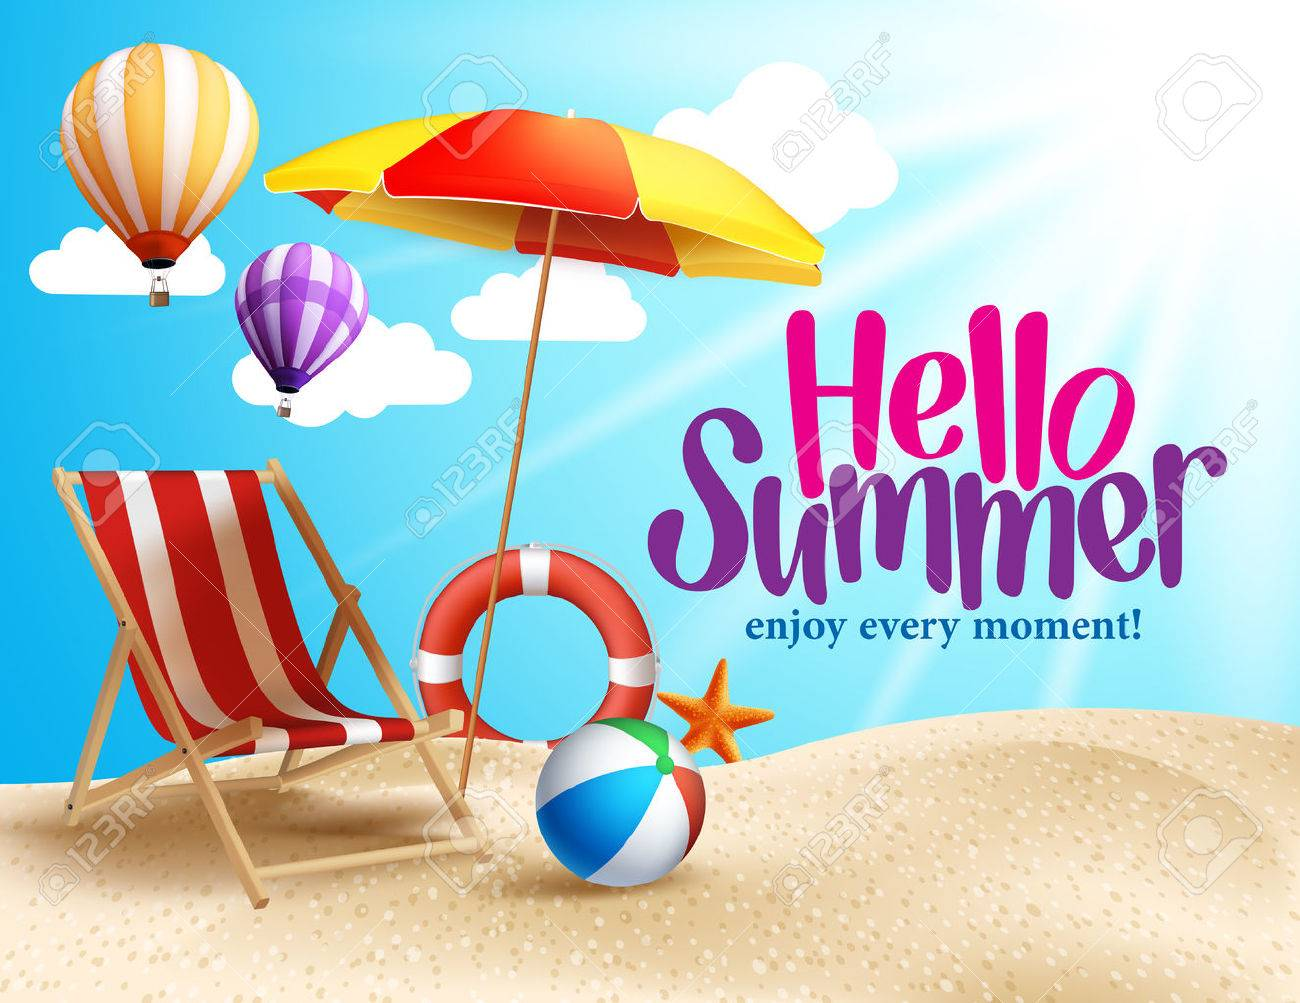 Summer Beach Vector Design in the Seashore with Beach Umbrella and Chair. Summer Background Vector Illustration for Beach Holidays - 54281139